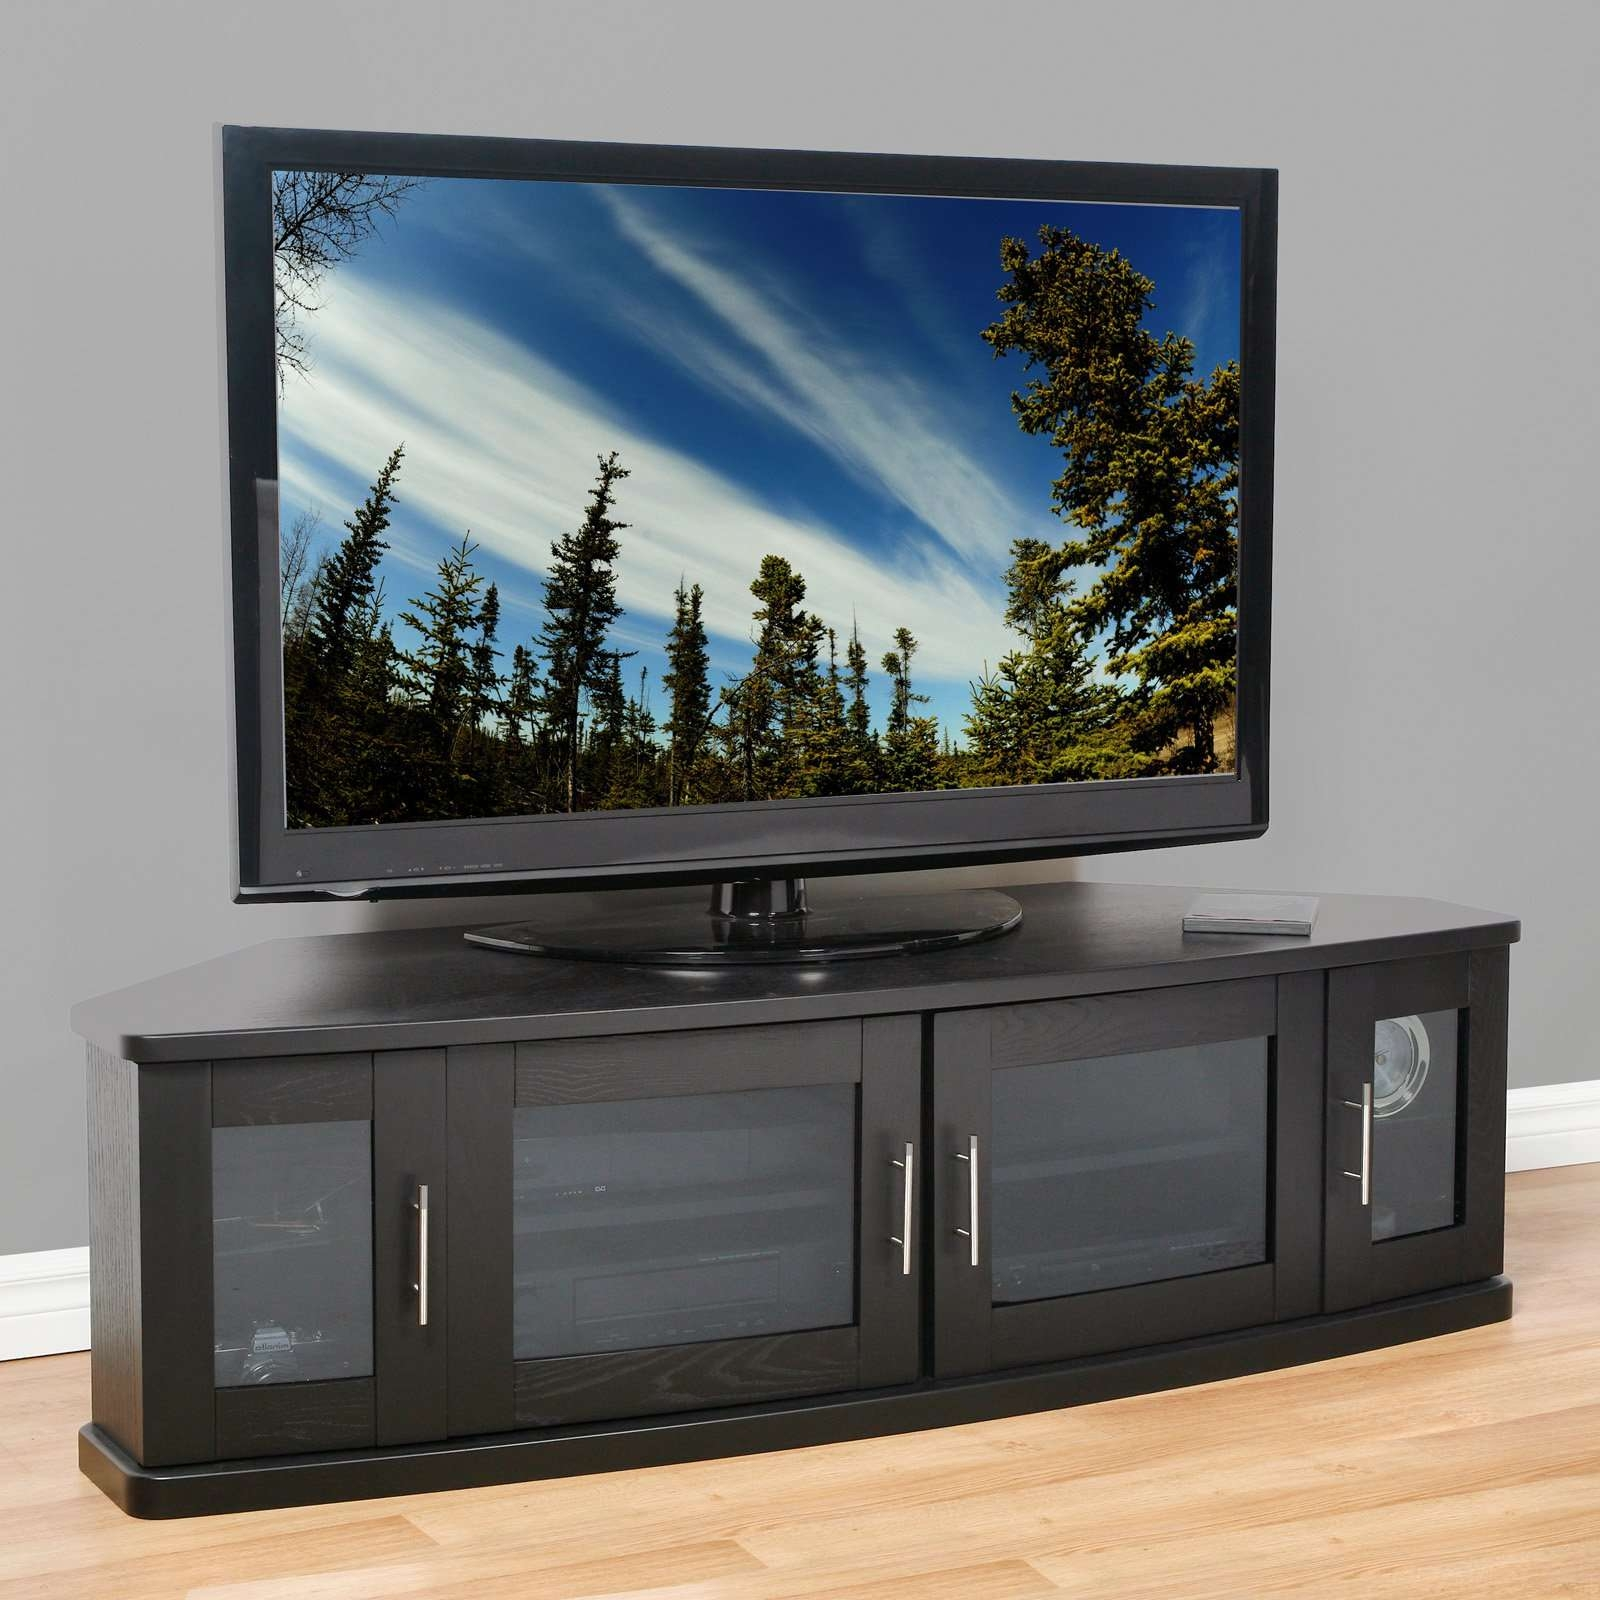 Plateau Newport 62 Inch Corner Tv Stand In Black – Walmart For Tv Stands For Corners (View 16 of 20)